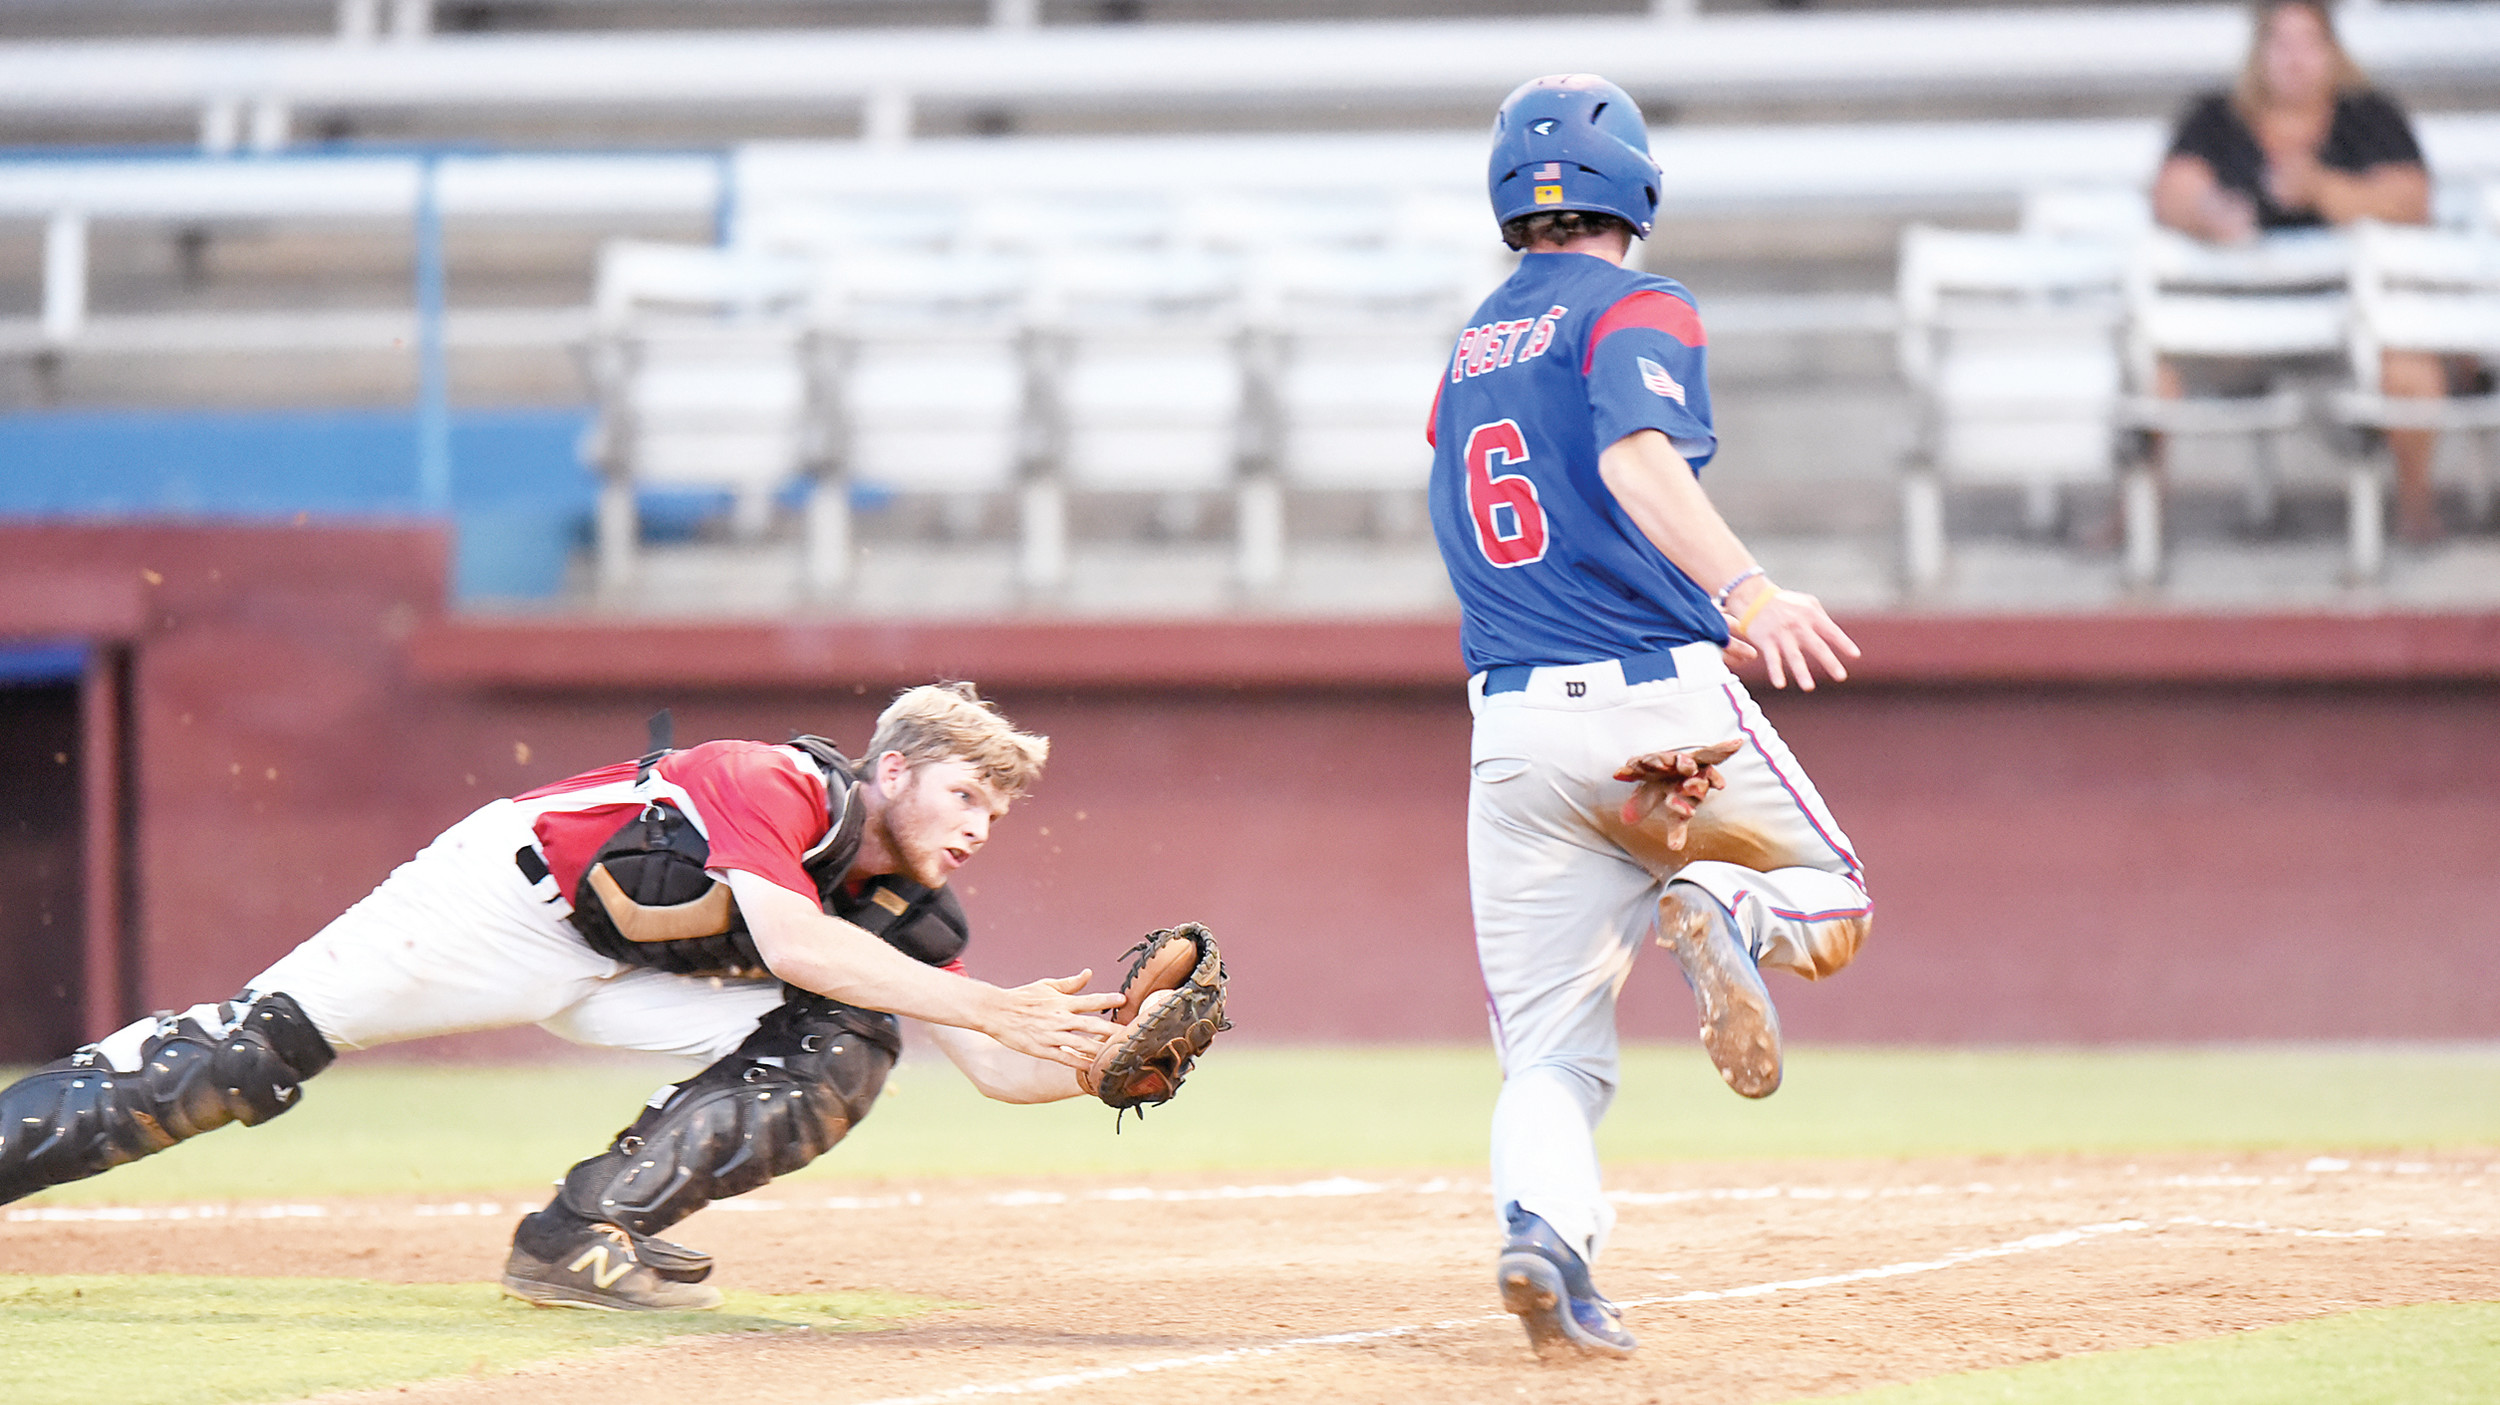 Sumter's Caleb Larrimore (6) scores the first run of the game as Murrells Inlet catcher Kevin Fries lunges to try to get the out during the P-15's 11-1 victory on Wednesday in the opening game of a first-round American Legion state playoff series at Riley Park.